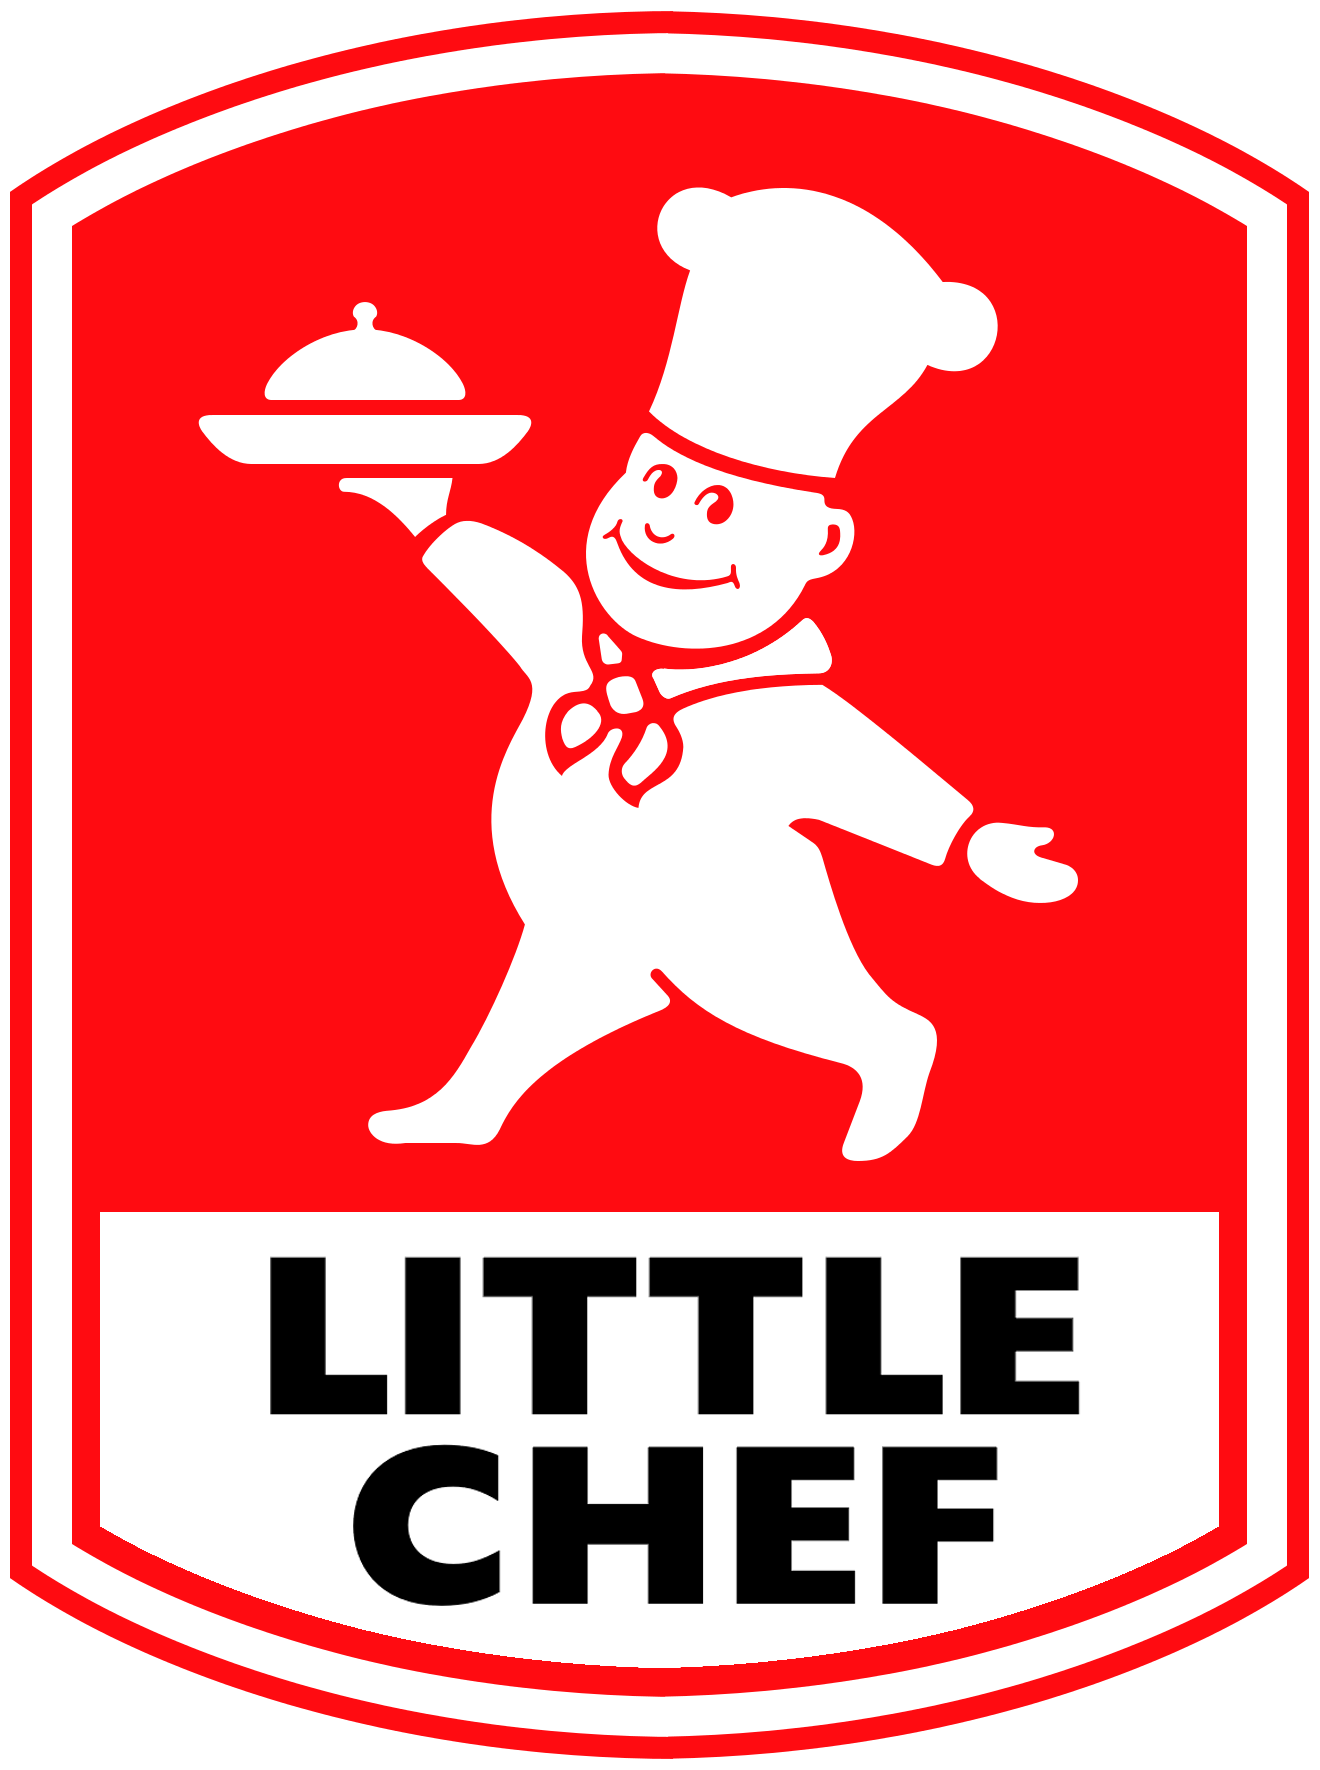 Little chef98l